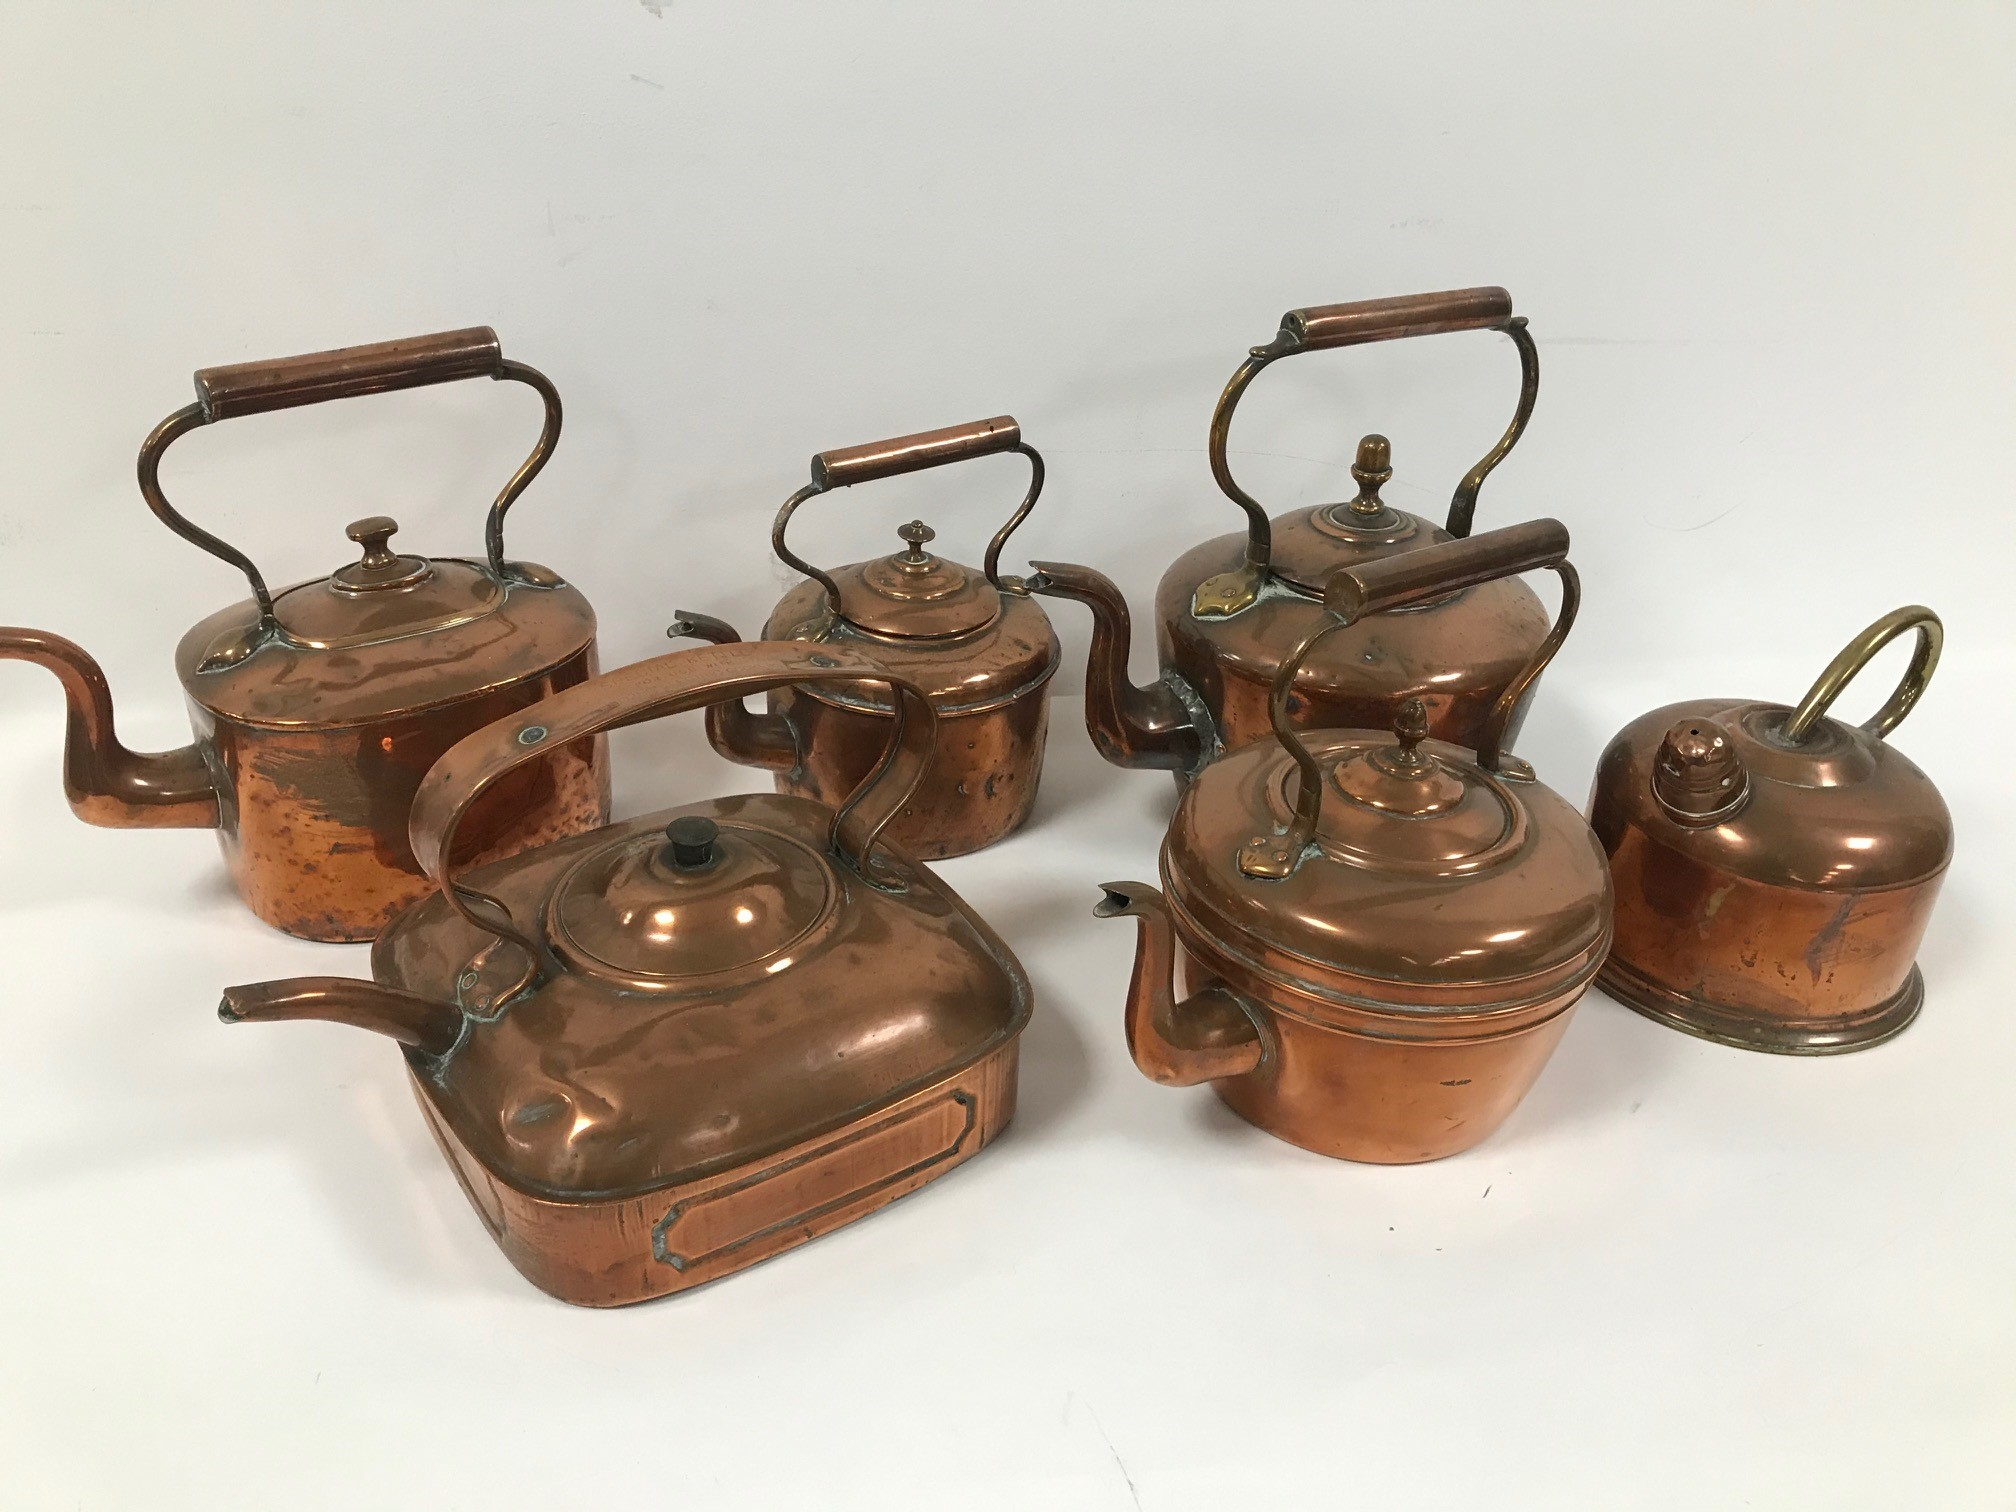 Six vintage copper kettles, one marked Special Kettle for Electric Belling Cookers (6)